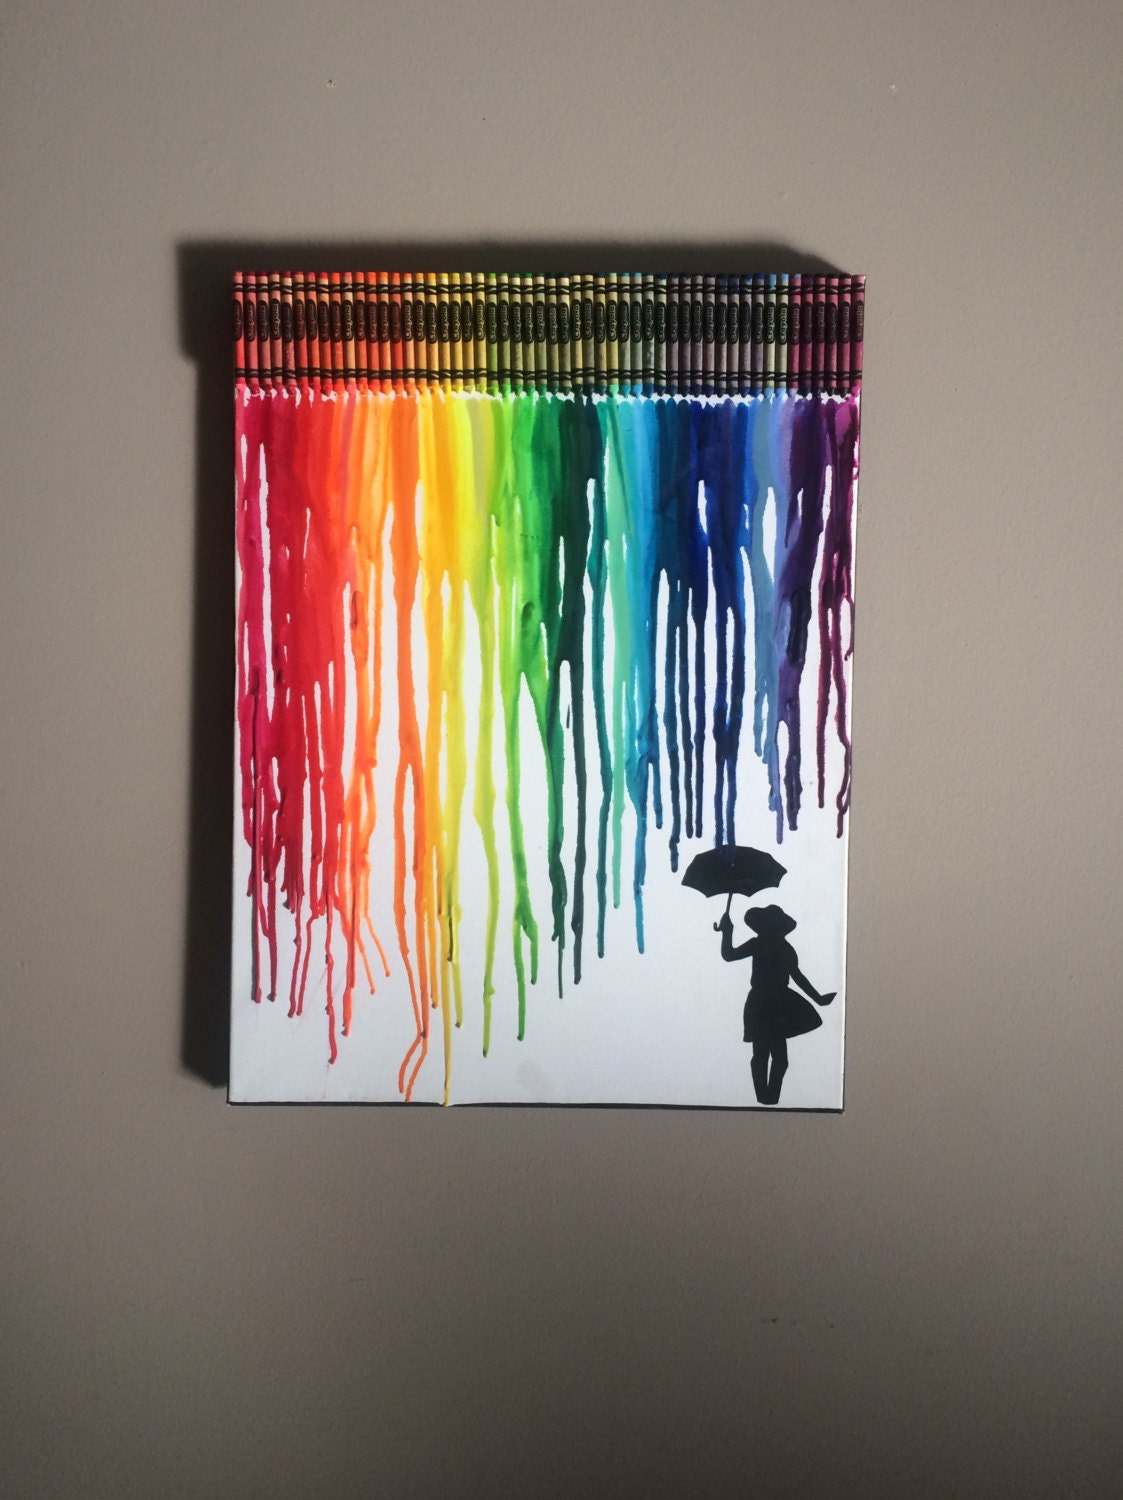 Melted crayon on canvas rainbow painting lgbtq crayola for How to make a melted crayon art canvas